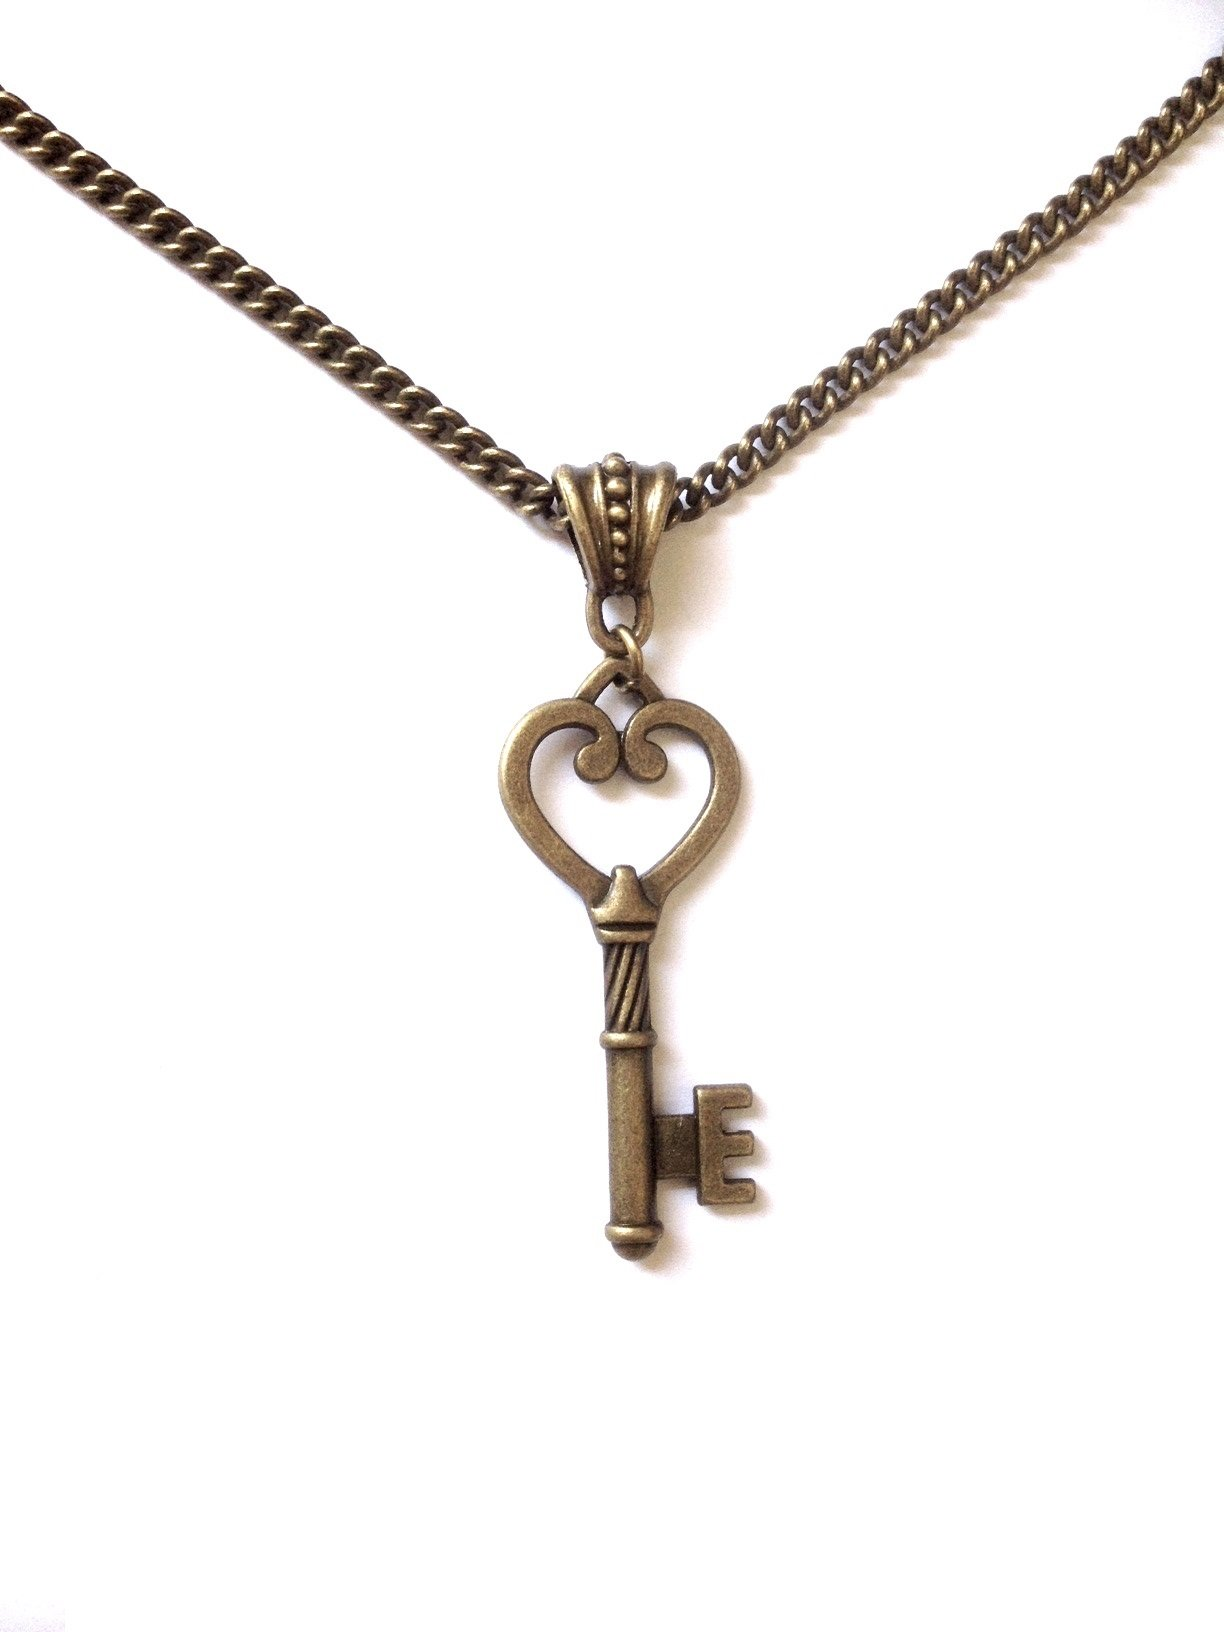 8th Wedding Anniversary Gift For Her - Bronze Vintage Key Necklace - 8 Years/Wedding Anniversary (Bronze) - Boxed & Gift Wrapped